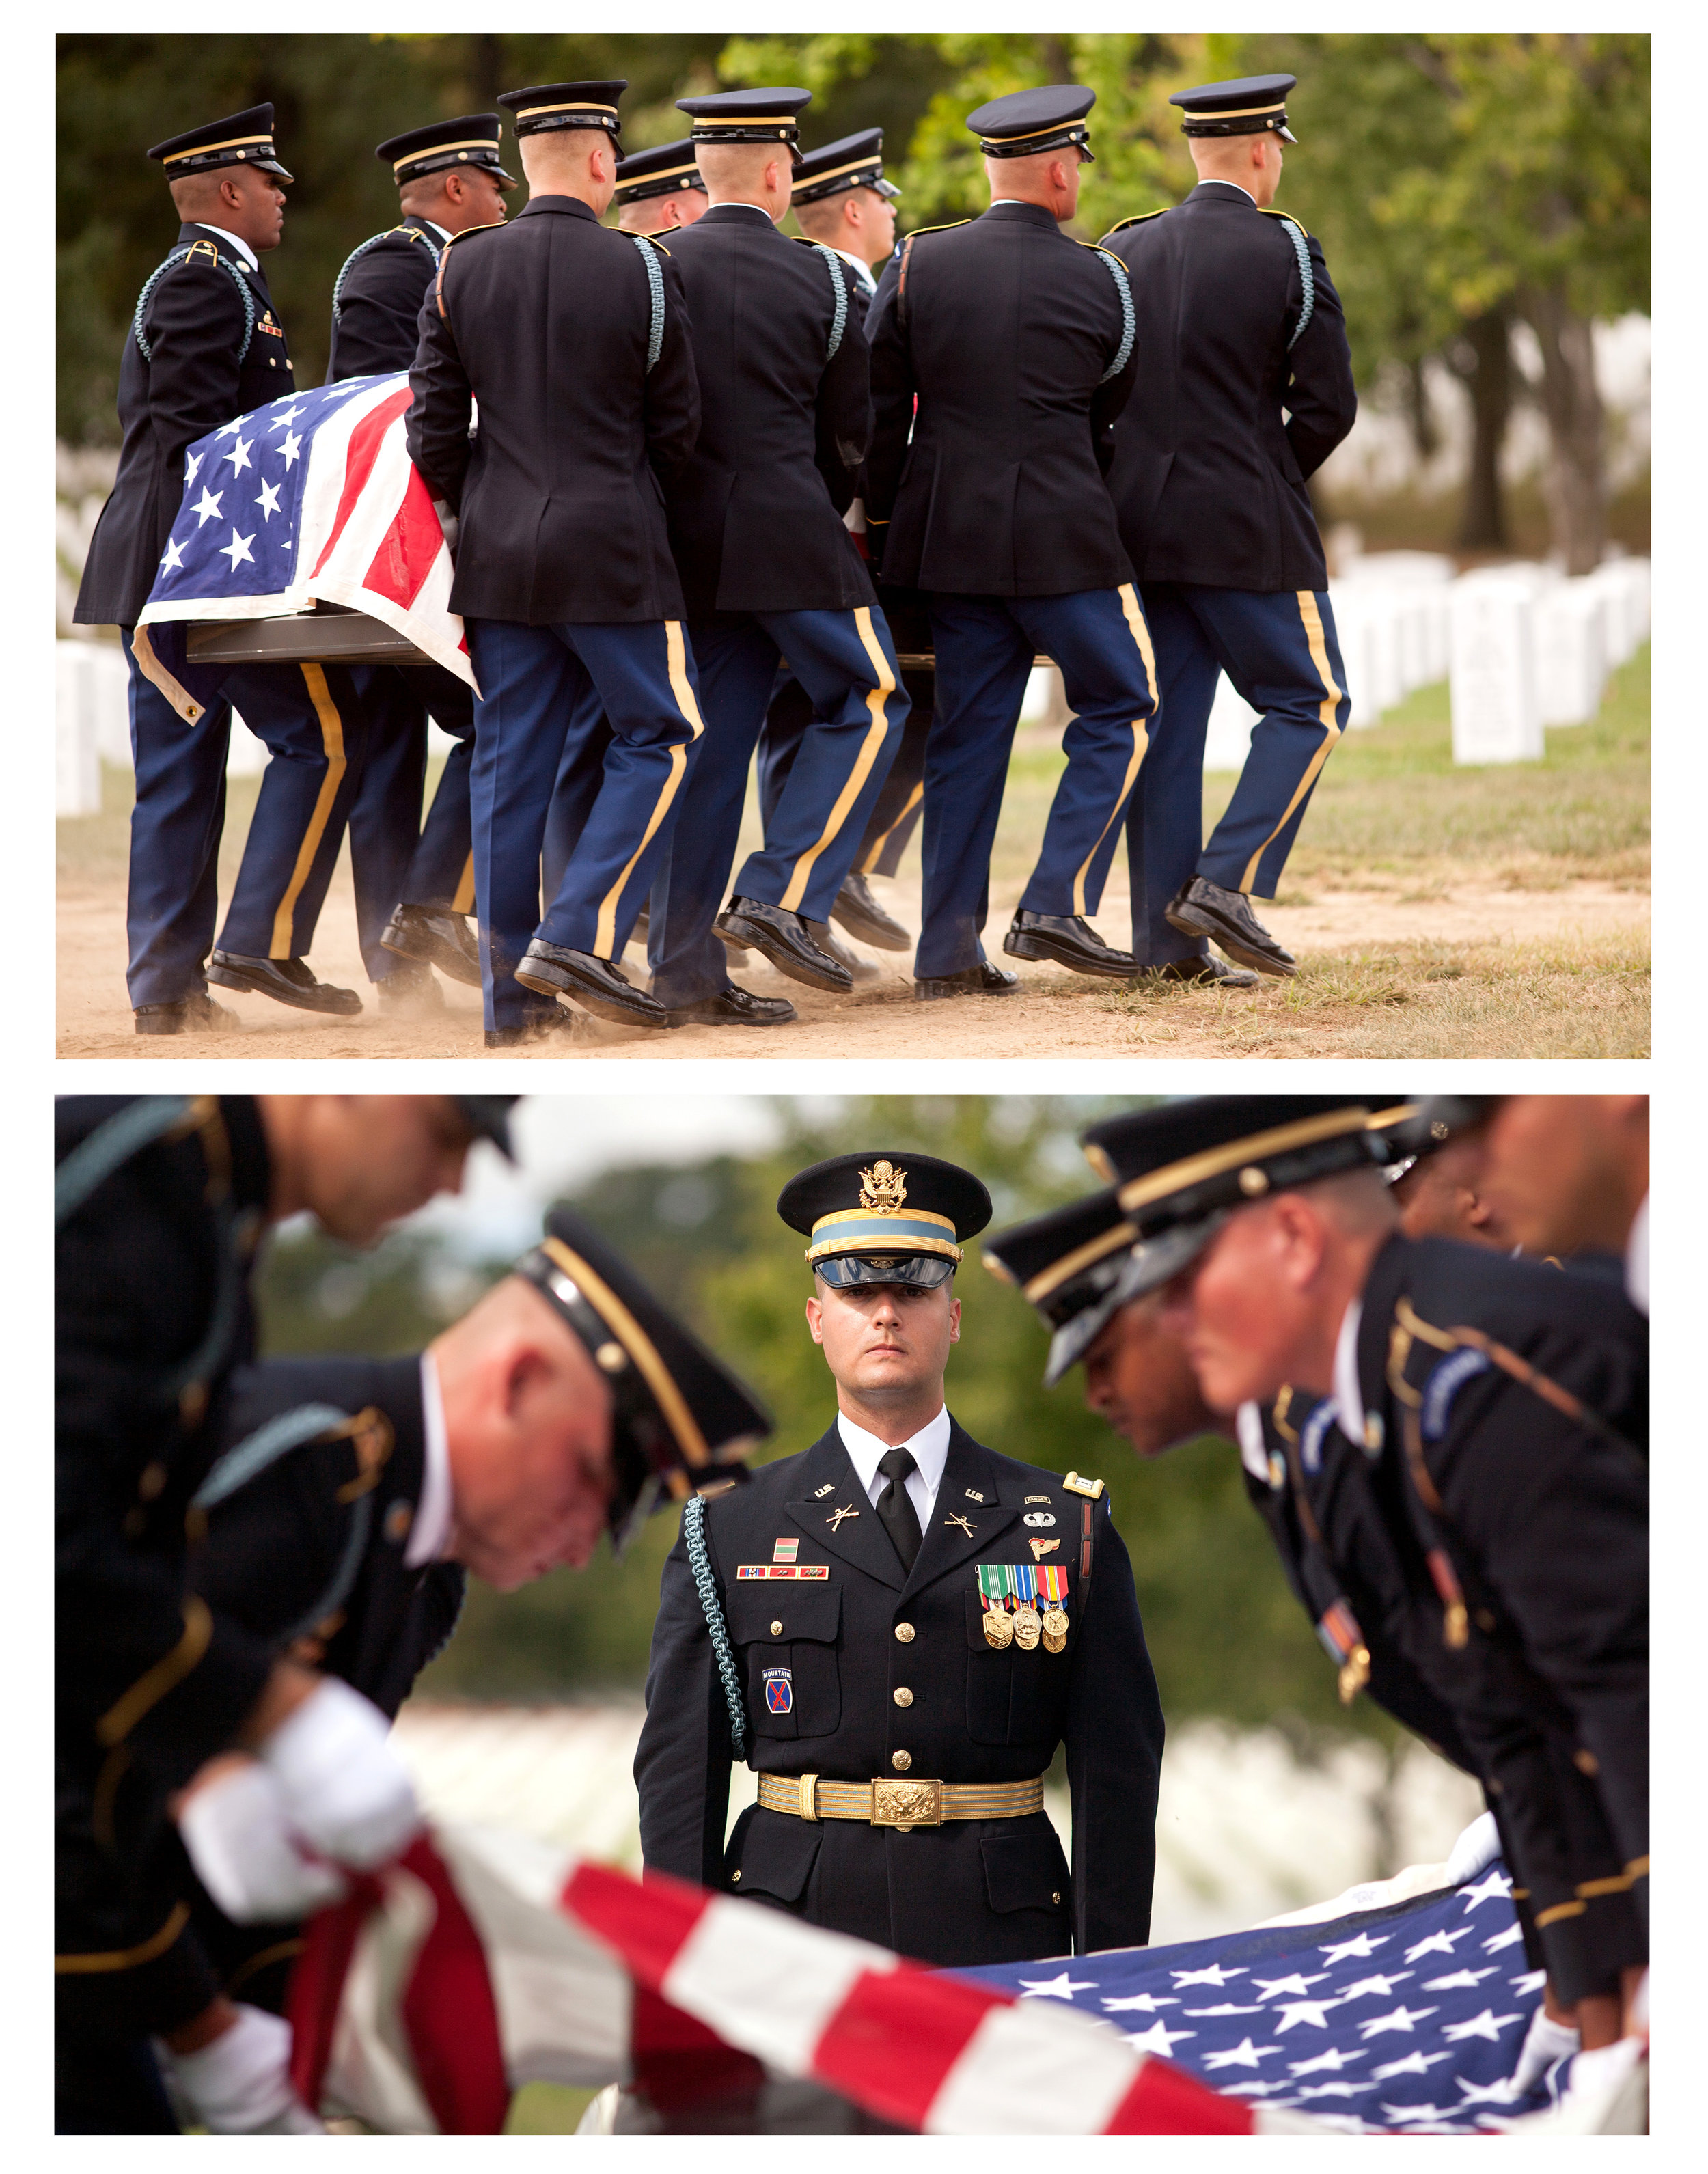 WASHINGTON D.C., September 27, 2017-- (Top) Eight soldiers carry the casket briskly and purposefully across the grounds to where it will be lowered beneath the surface. They move with precision and certainty in their every step. (Bottom) The leading soldier stands fast as the flag is carefully folded.  Photo by Taylor Mickal